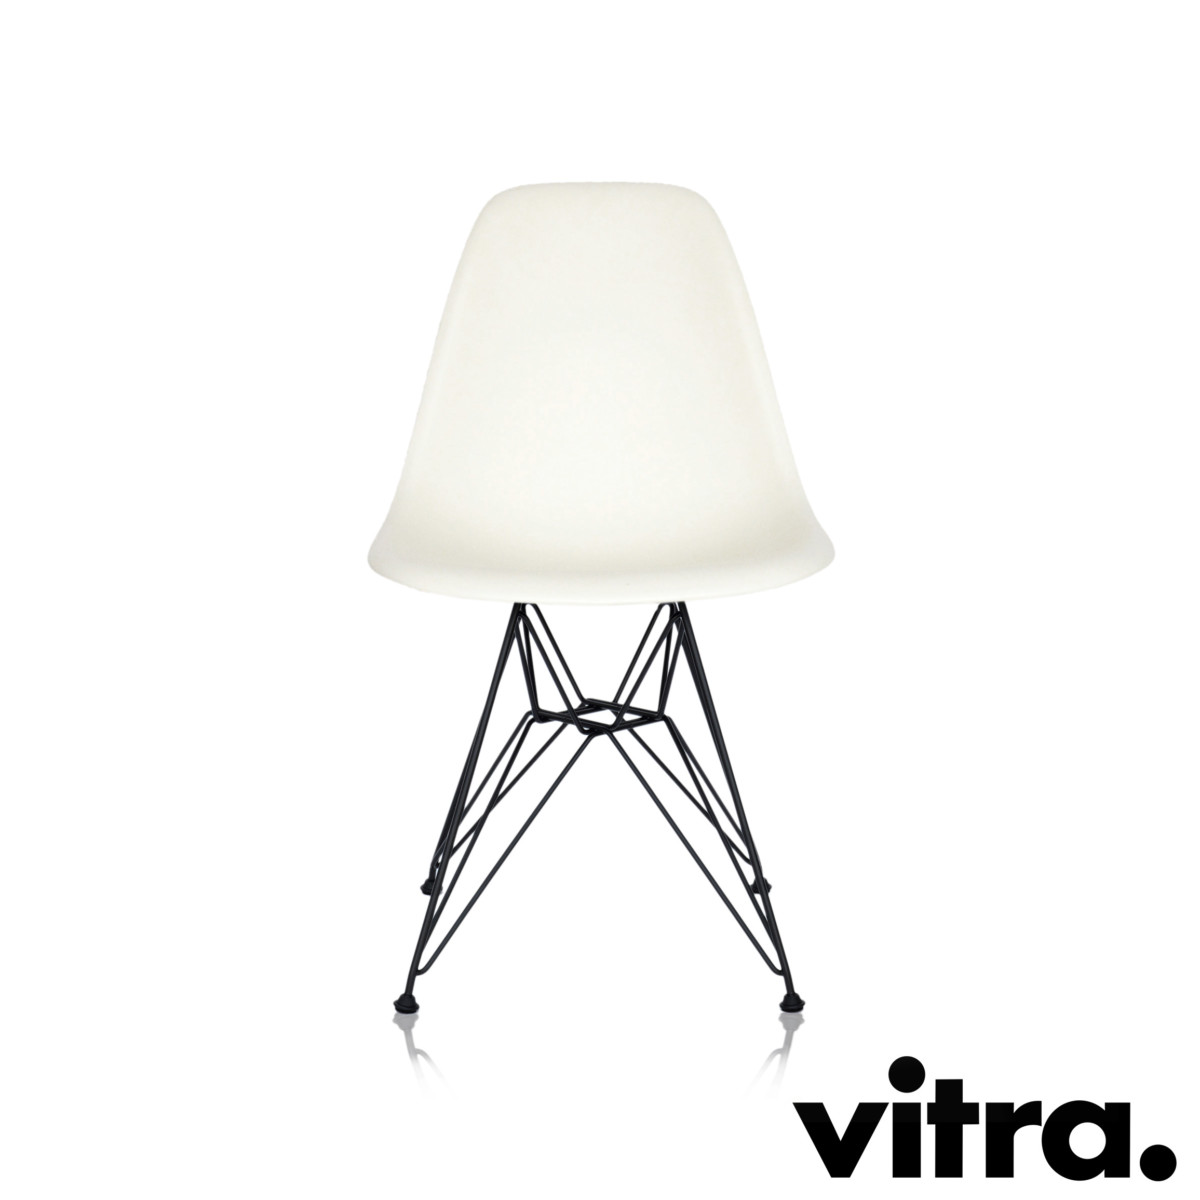 midmodern verkauft vitra eames st hle im online shop. Black Bedroom Furniture Sets. Home Design Ideas